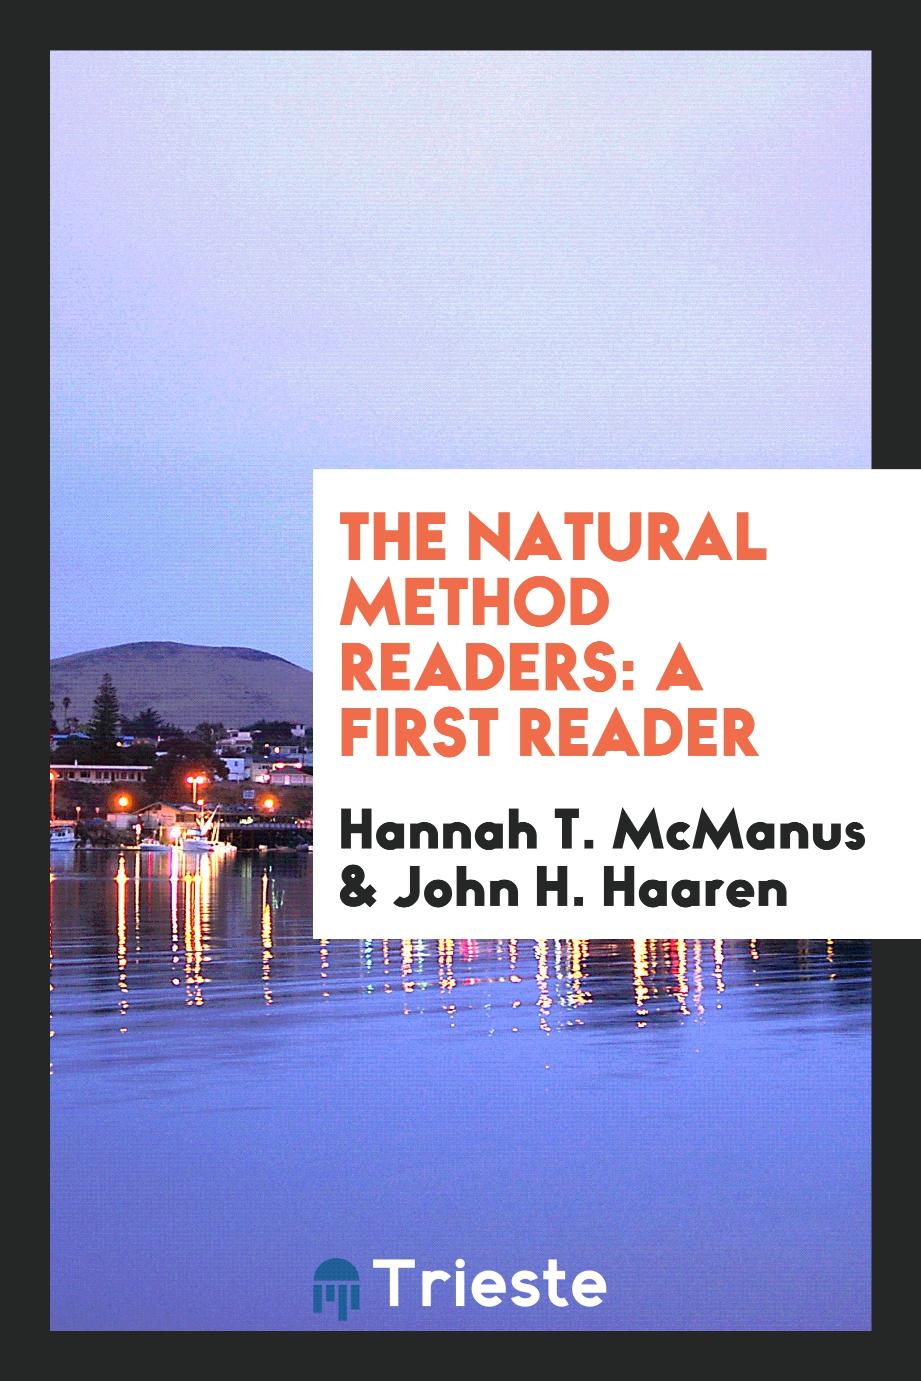 The Natural Method Readers: A First Reader